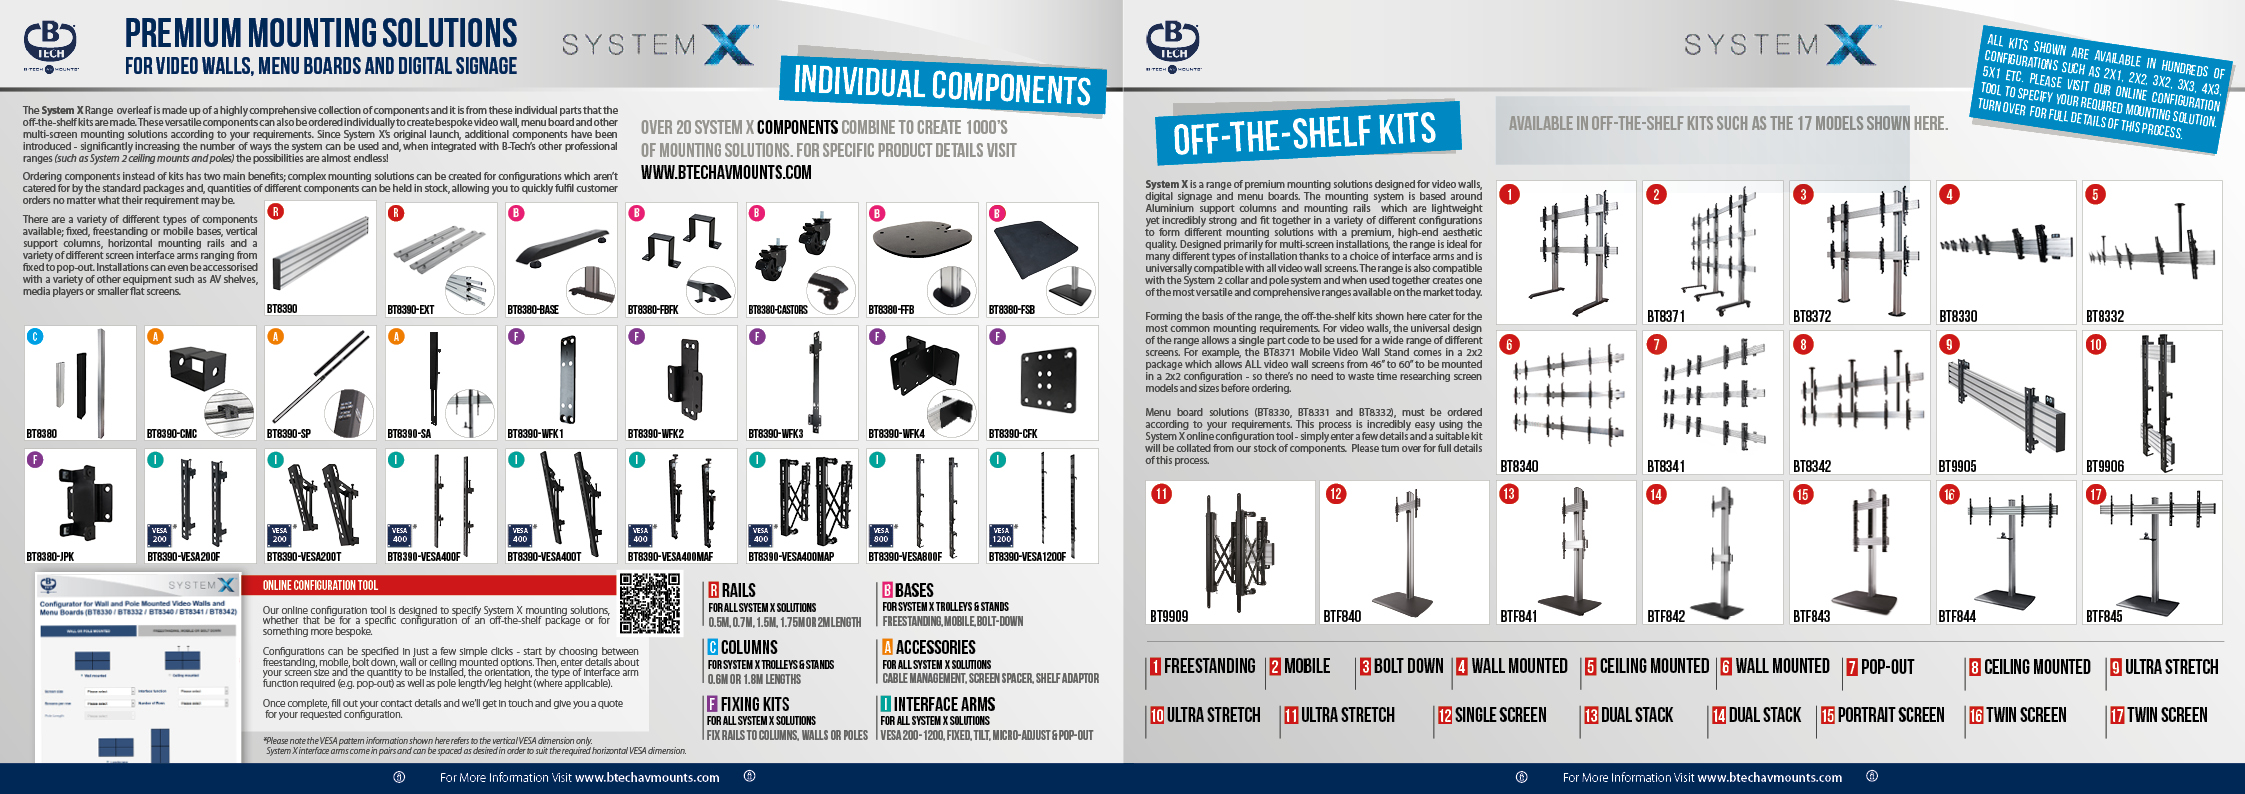 System X Mounting Guide 2017